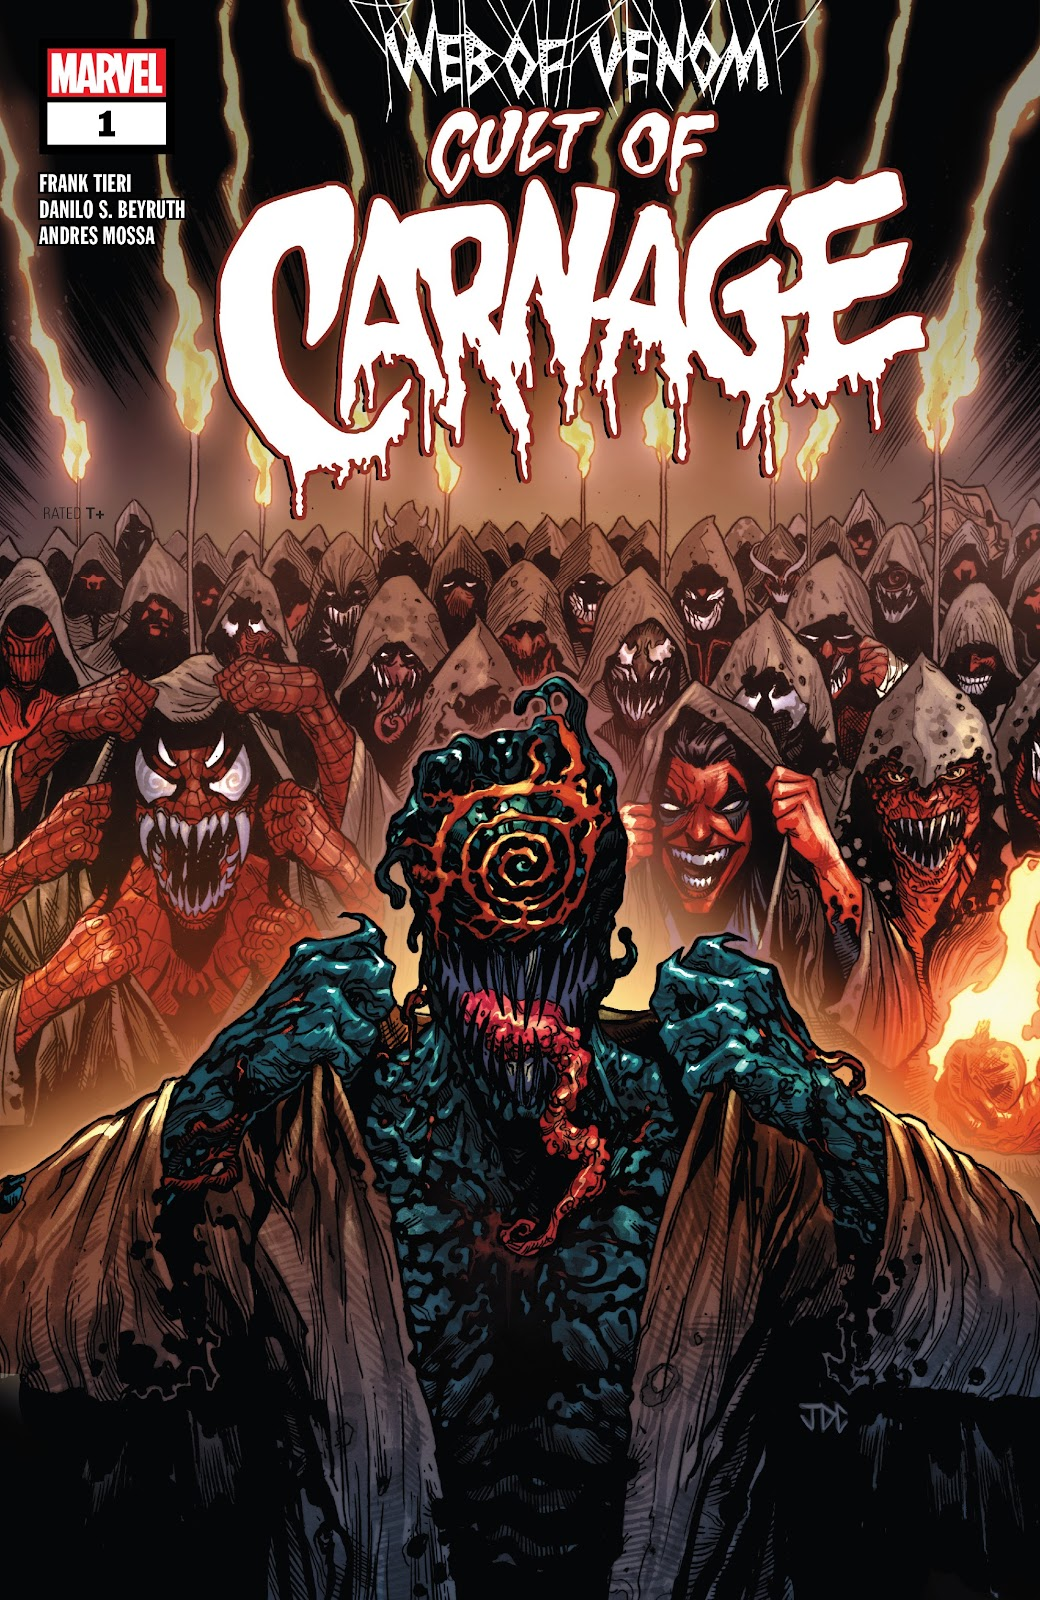 Read online Web of Venom: Cult of Carnage comic -  Issue # Full - 1